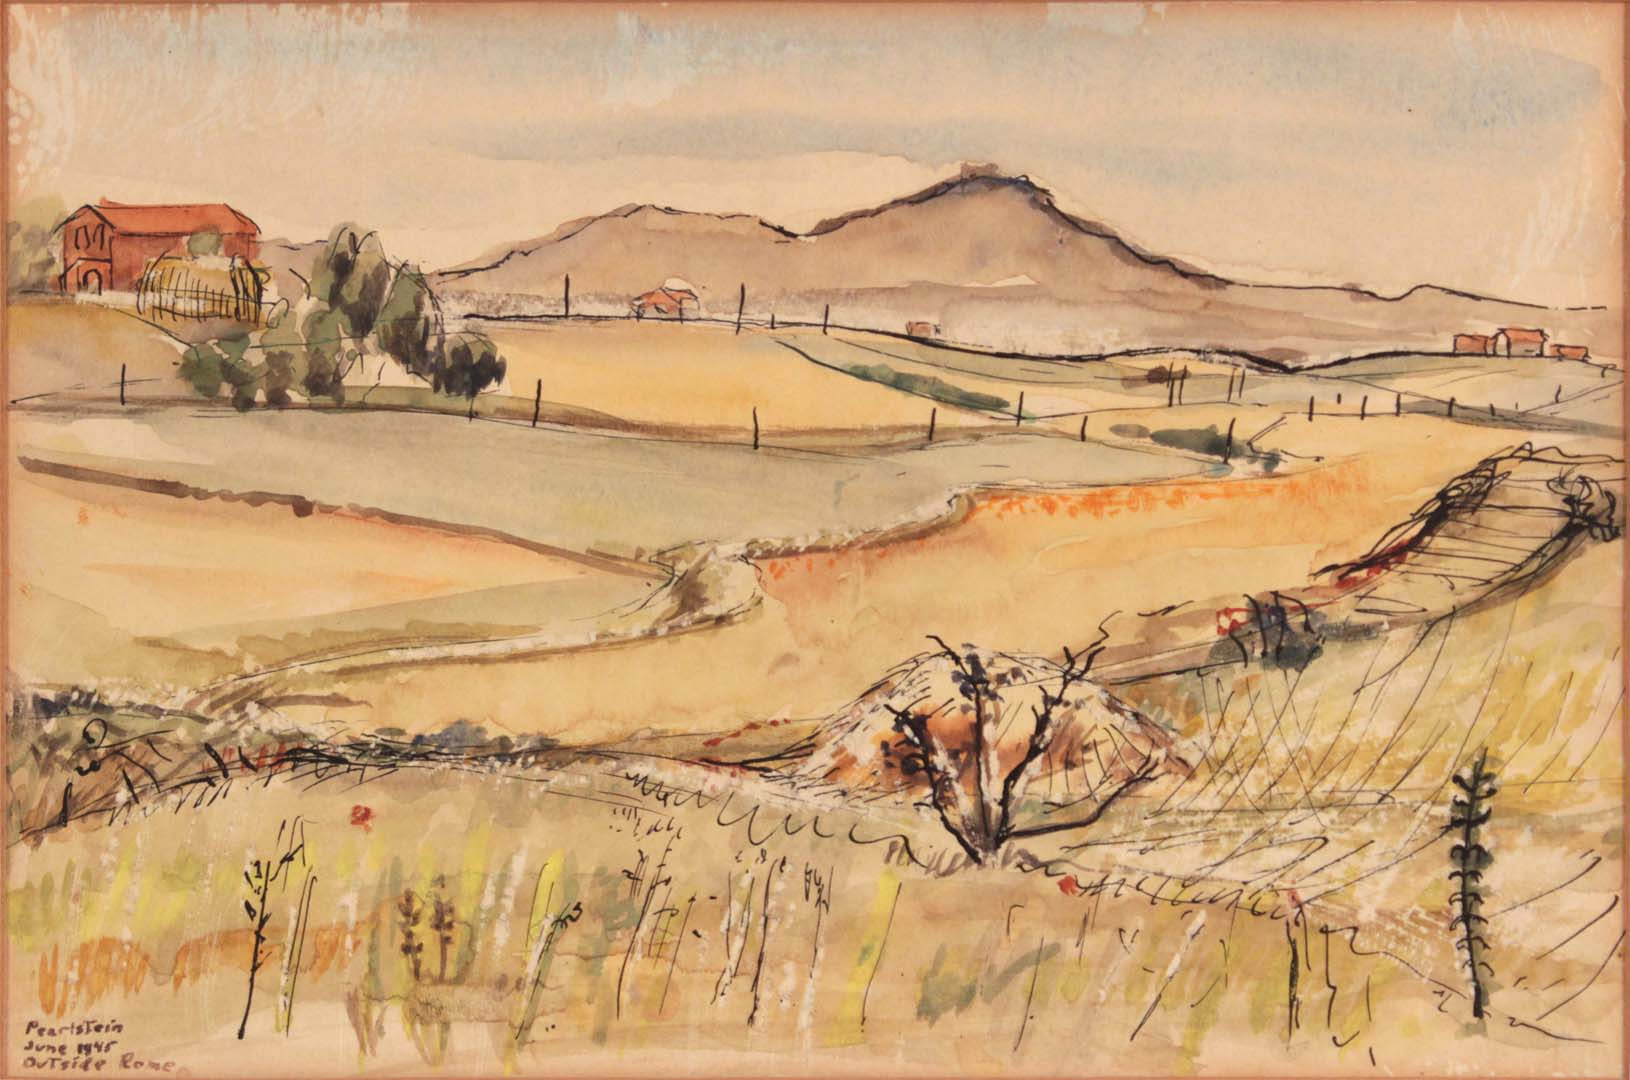 1946 Outside Rome Italy Pen and Ink on Paper 5.75 x 8.6875